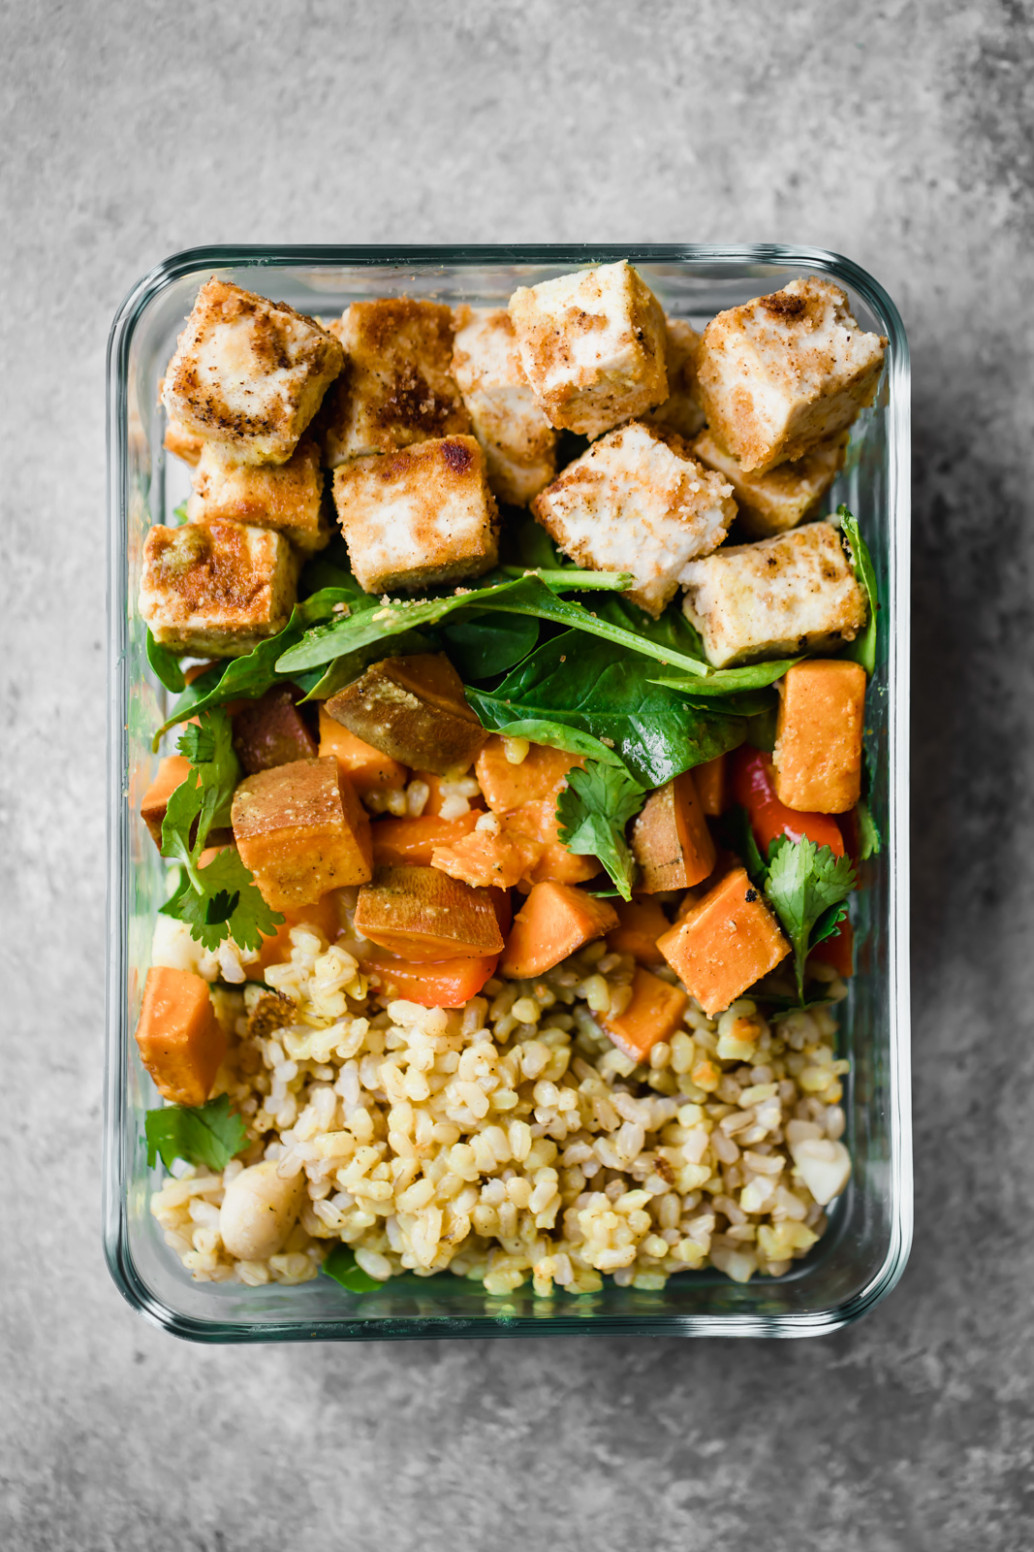 Vegan Macadamia Coconut Tofu Bowls | Ambitious Kitchen - Recipes Lunch Vegetarian